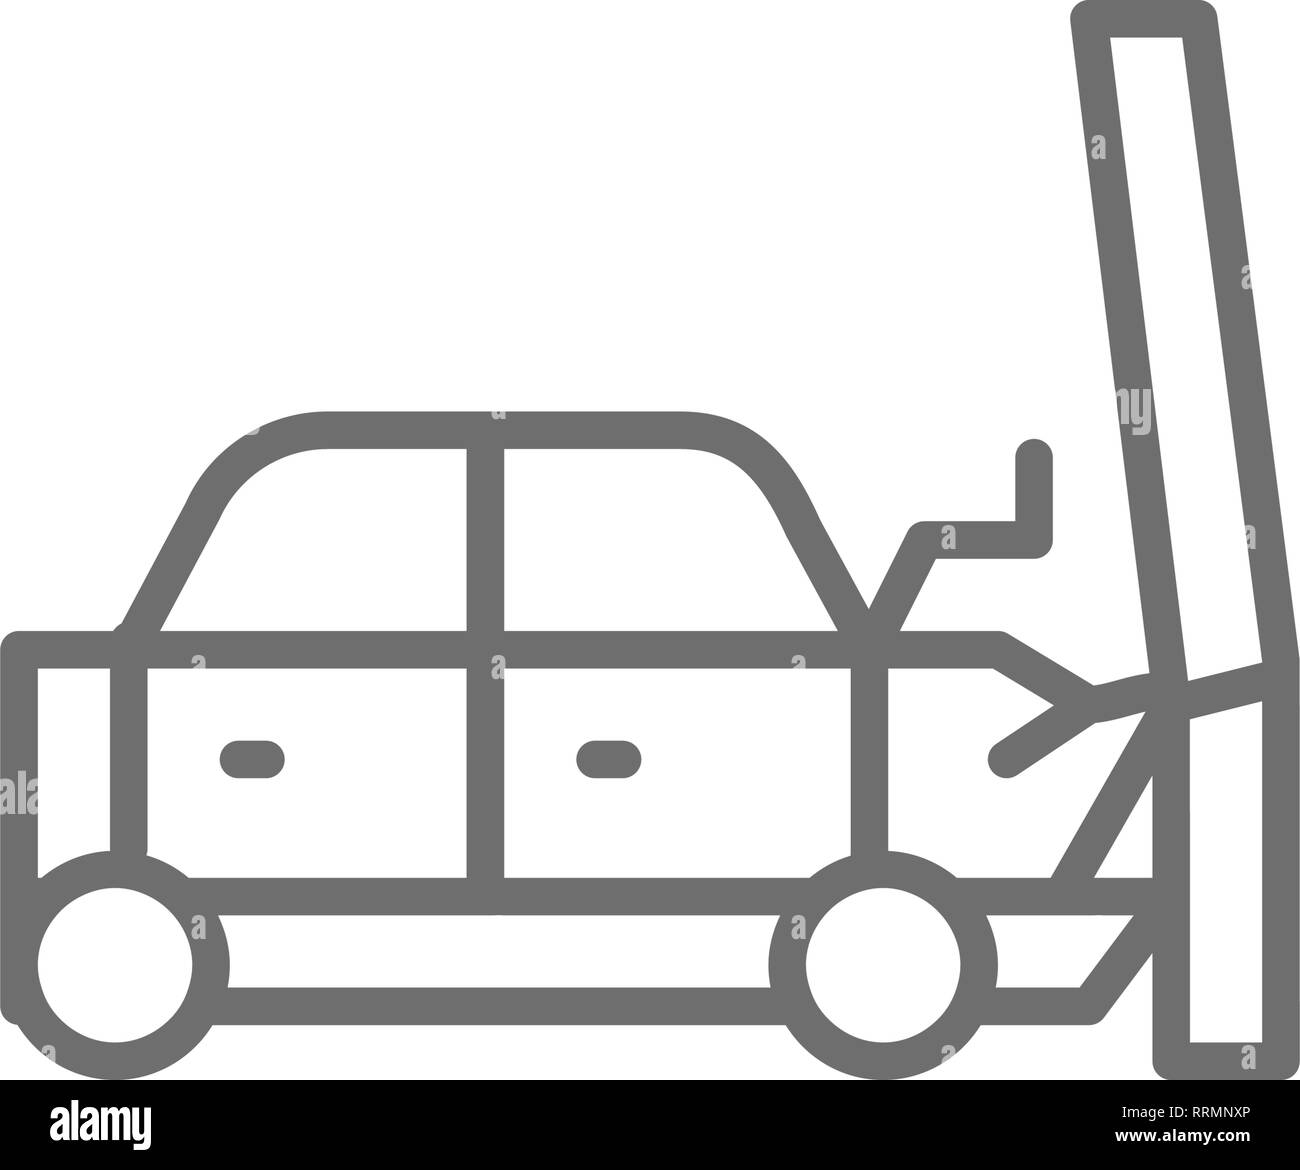 Car hit into a pole, transportation crash, accident line icon. Stock Vector